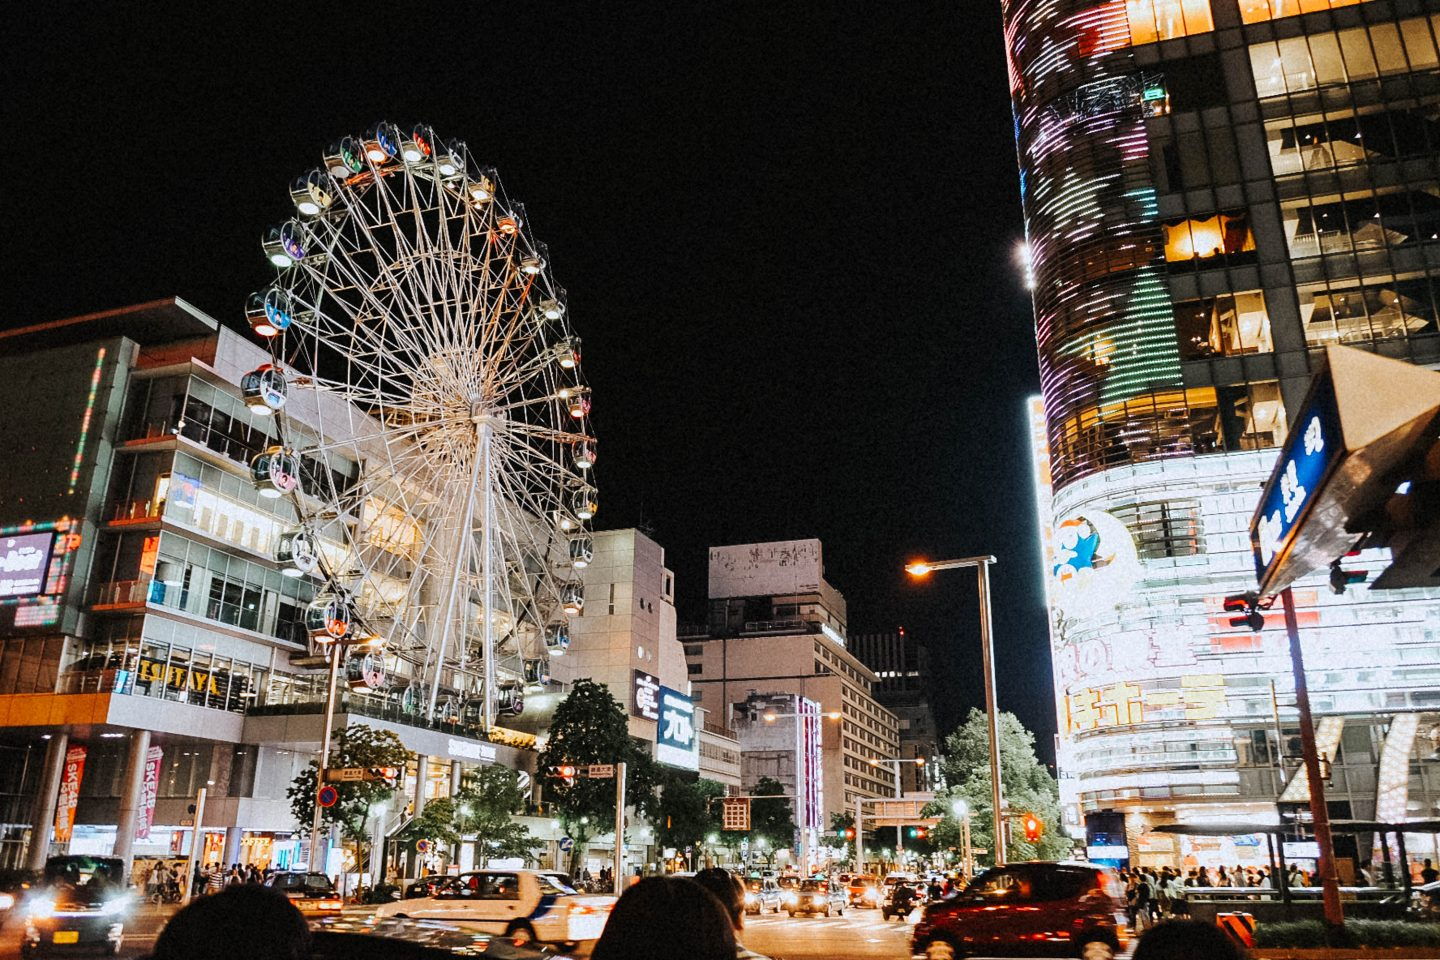 City center view of Nagoya City in Central Japan